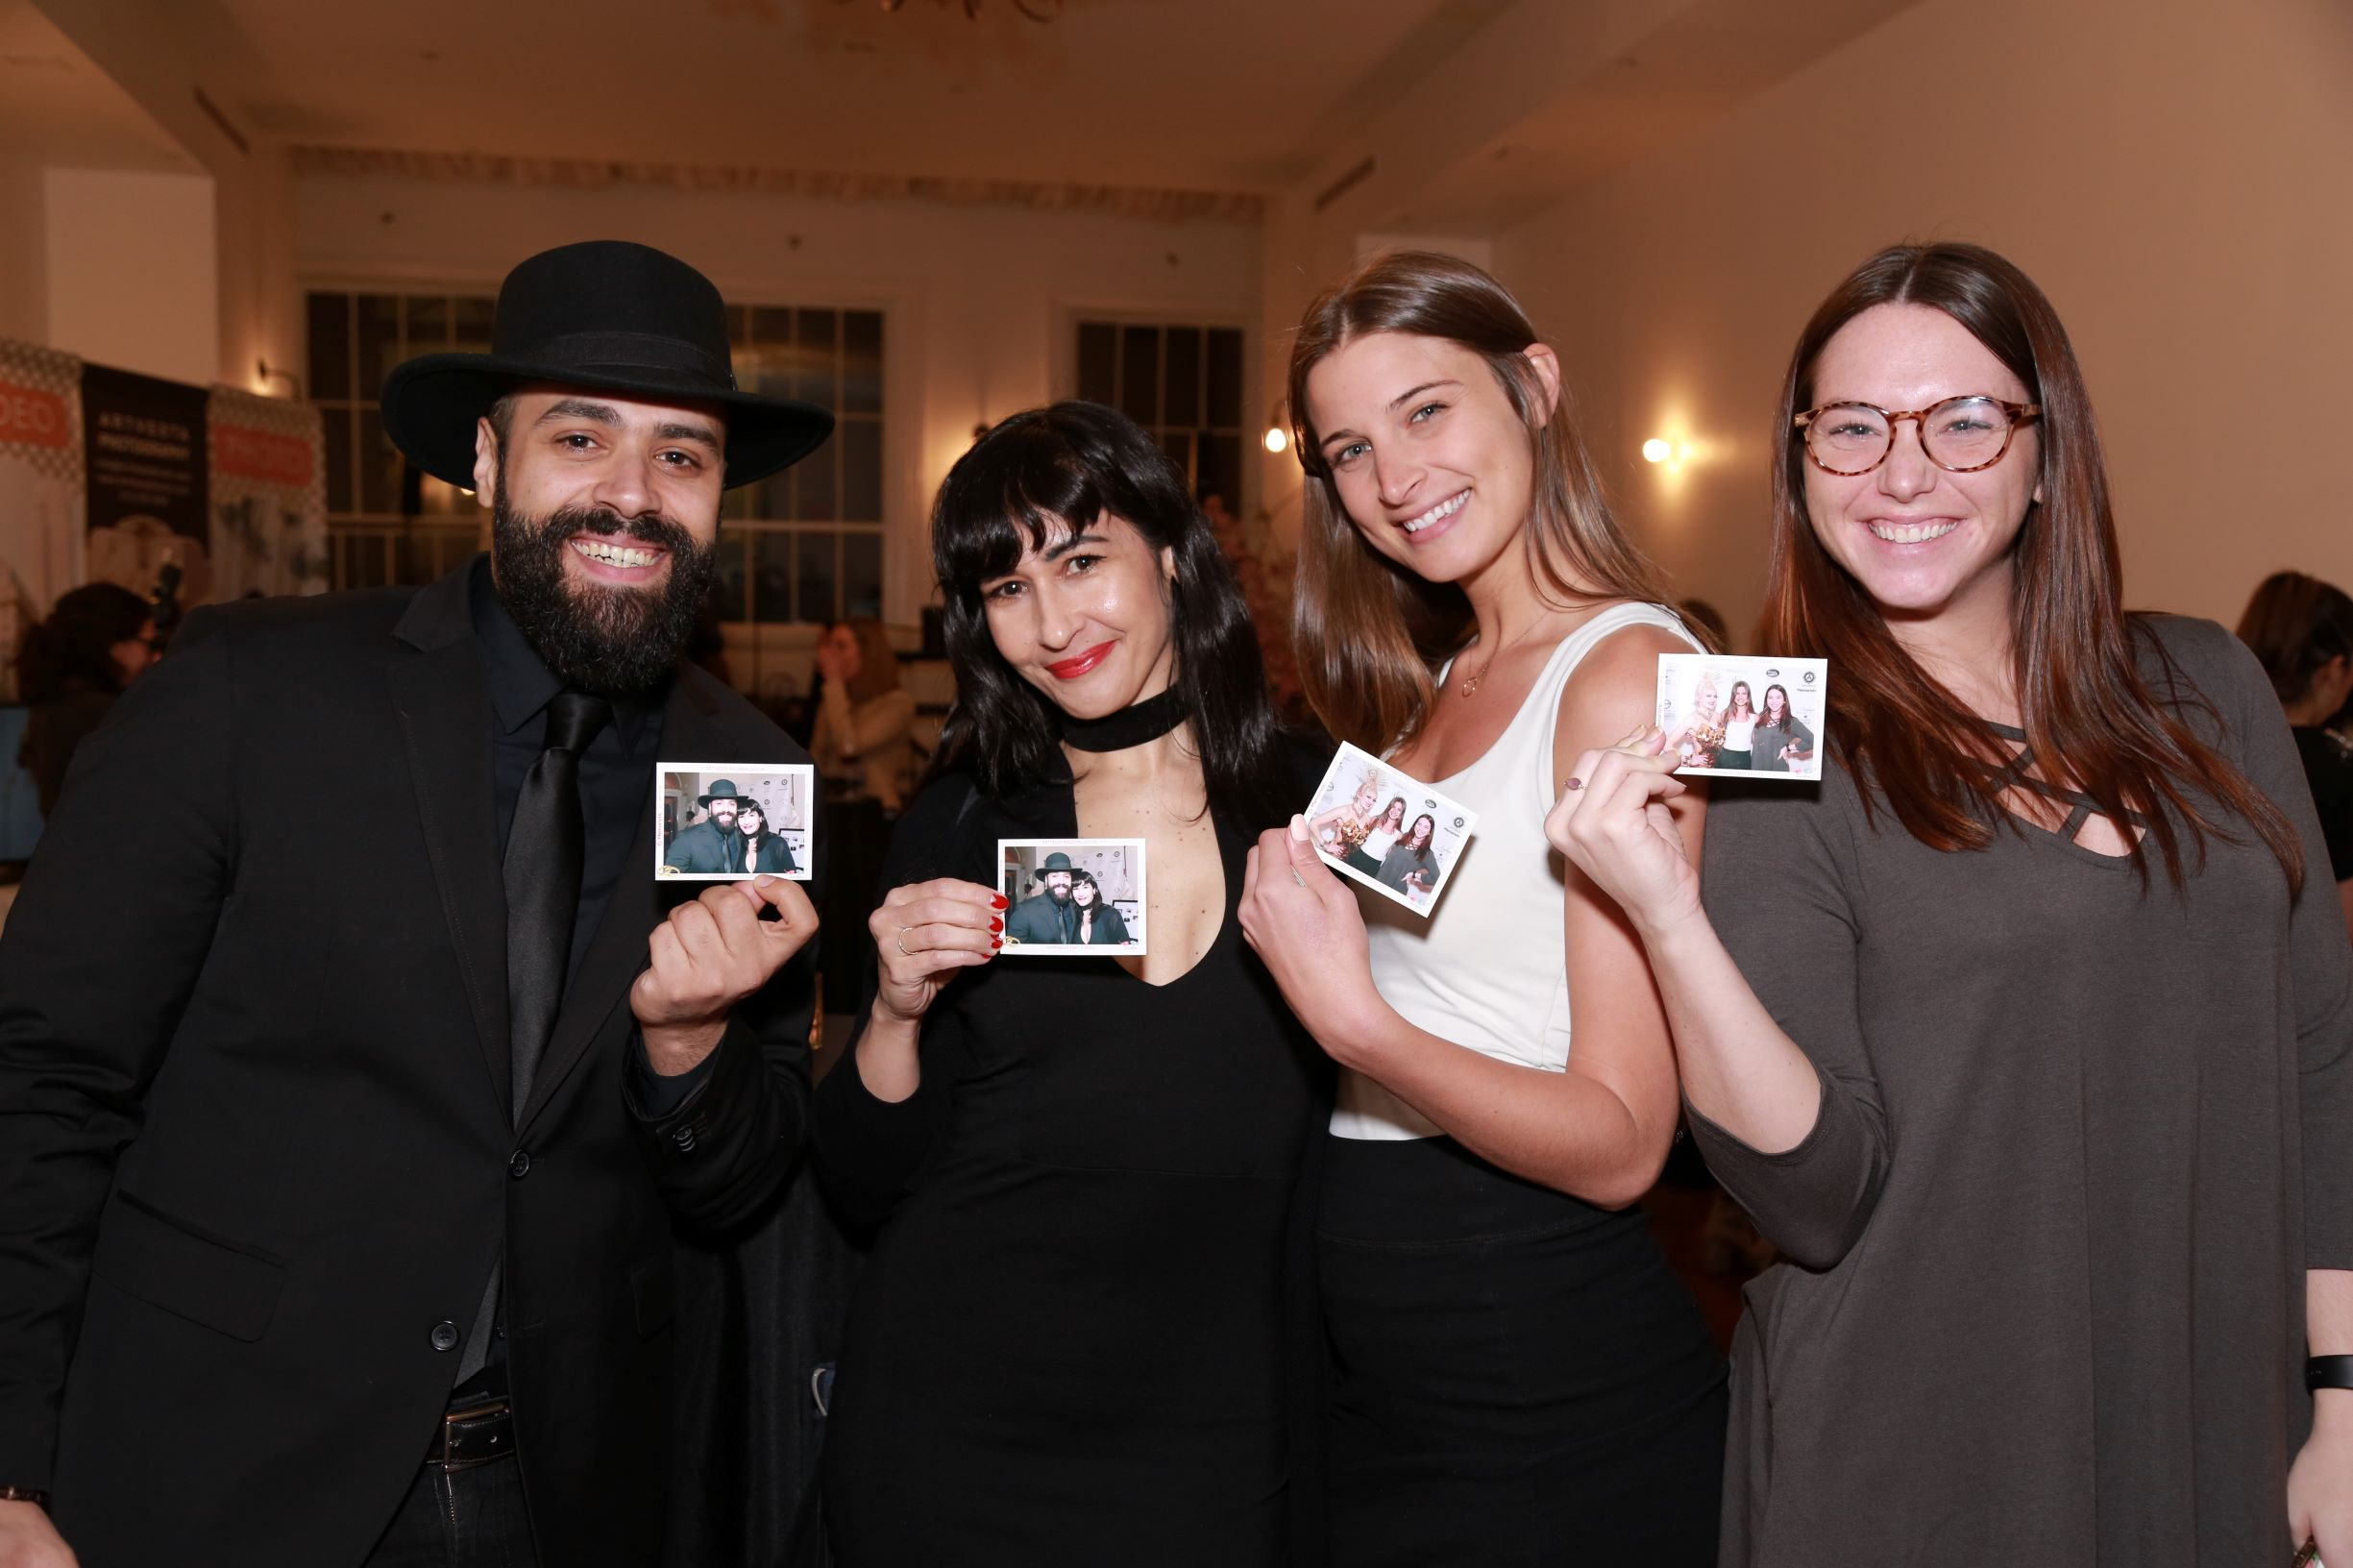 Event guests showcasing their personalized event magnets captured by Memoristic roaming magnet photographer.